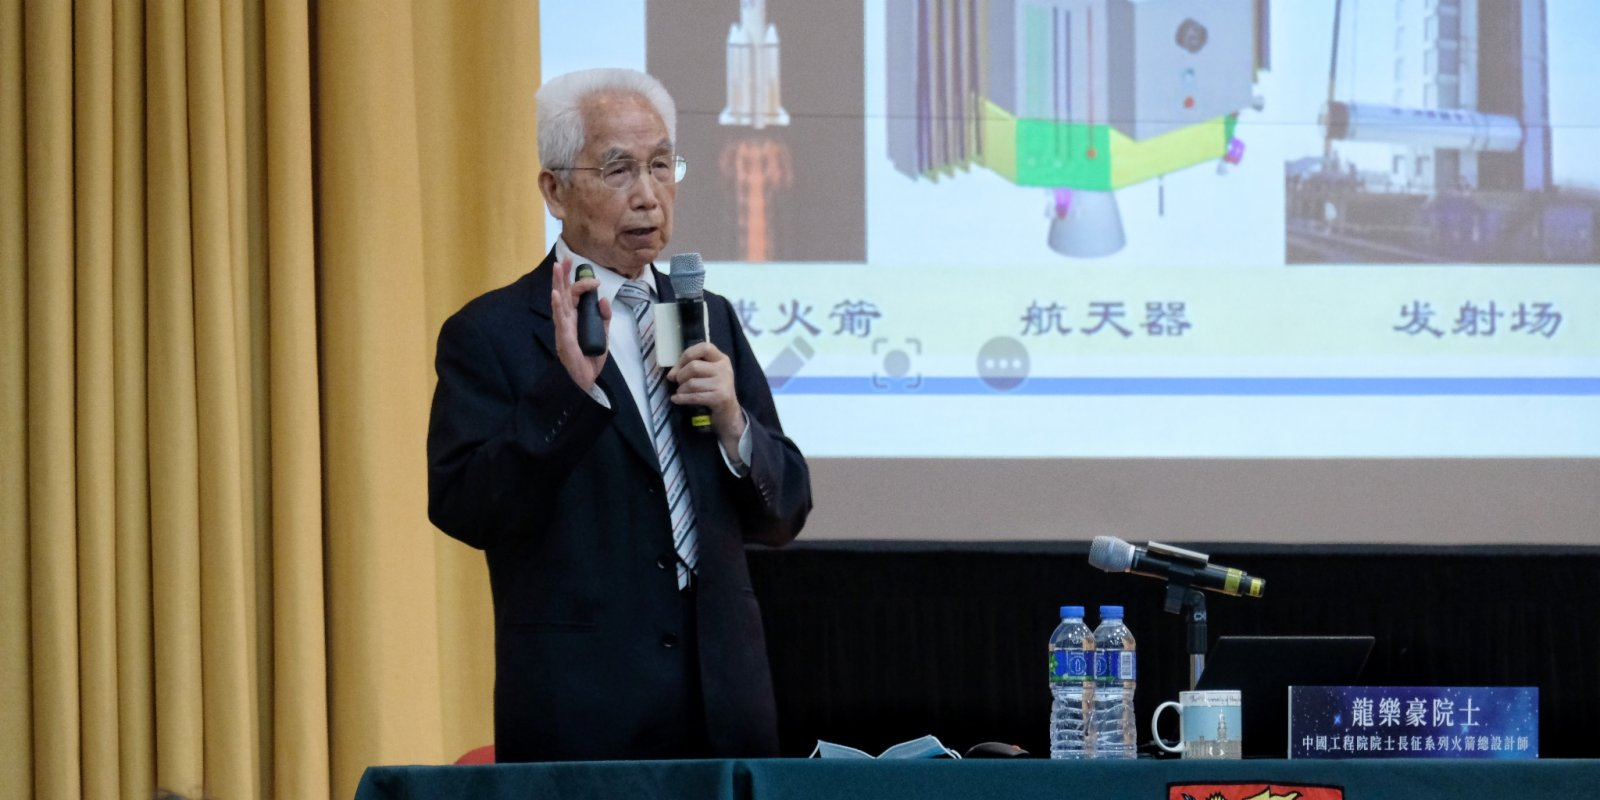 HKU lectures feature rocket designs, Mars probe